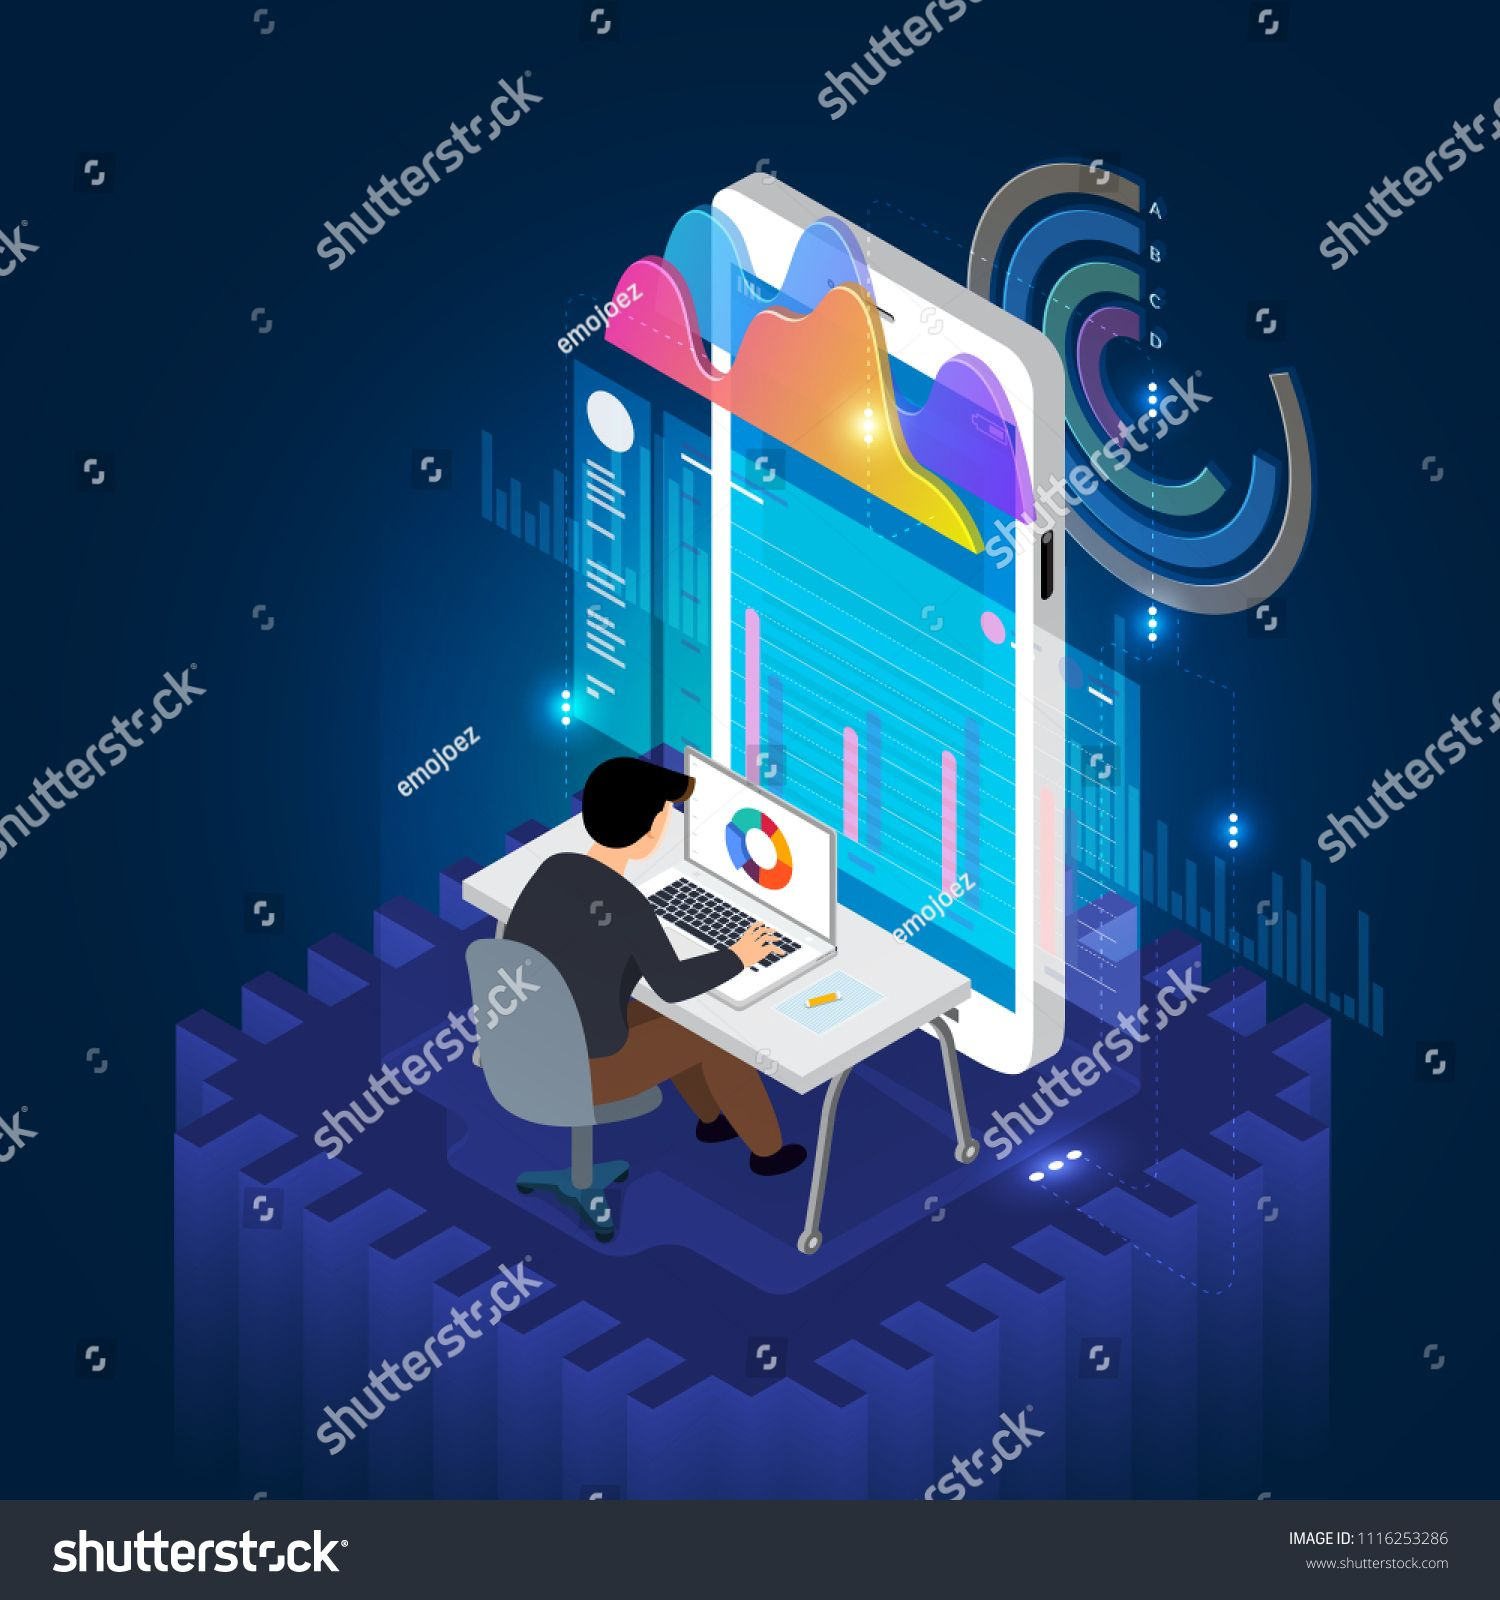 Isometric Illustrate Concept Businessman Analysis Data And